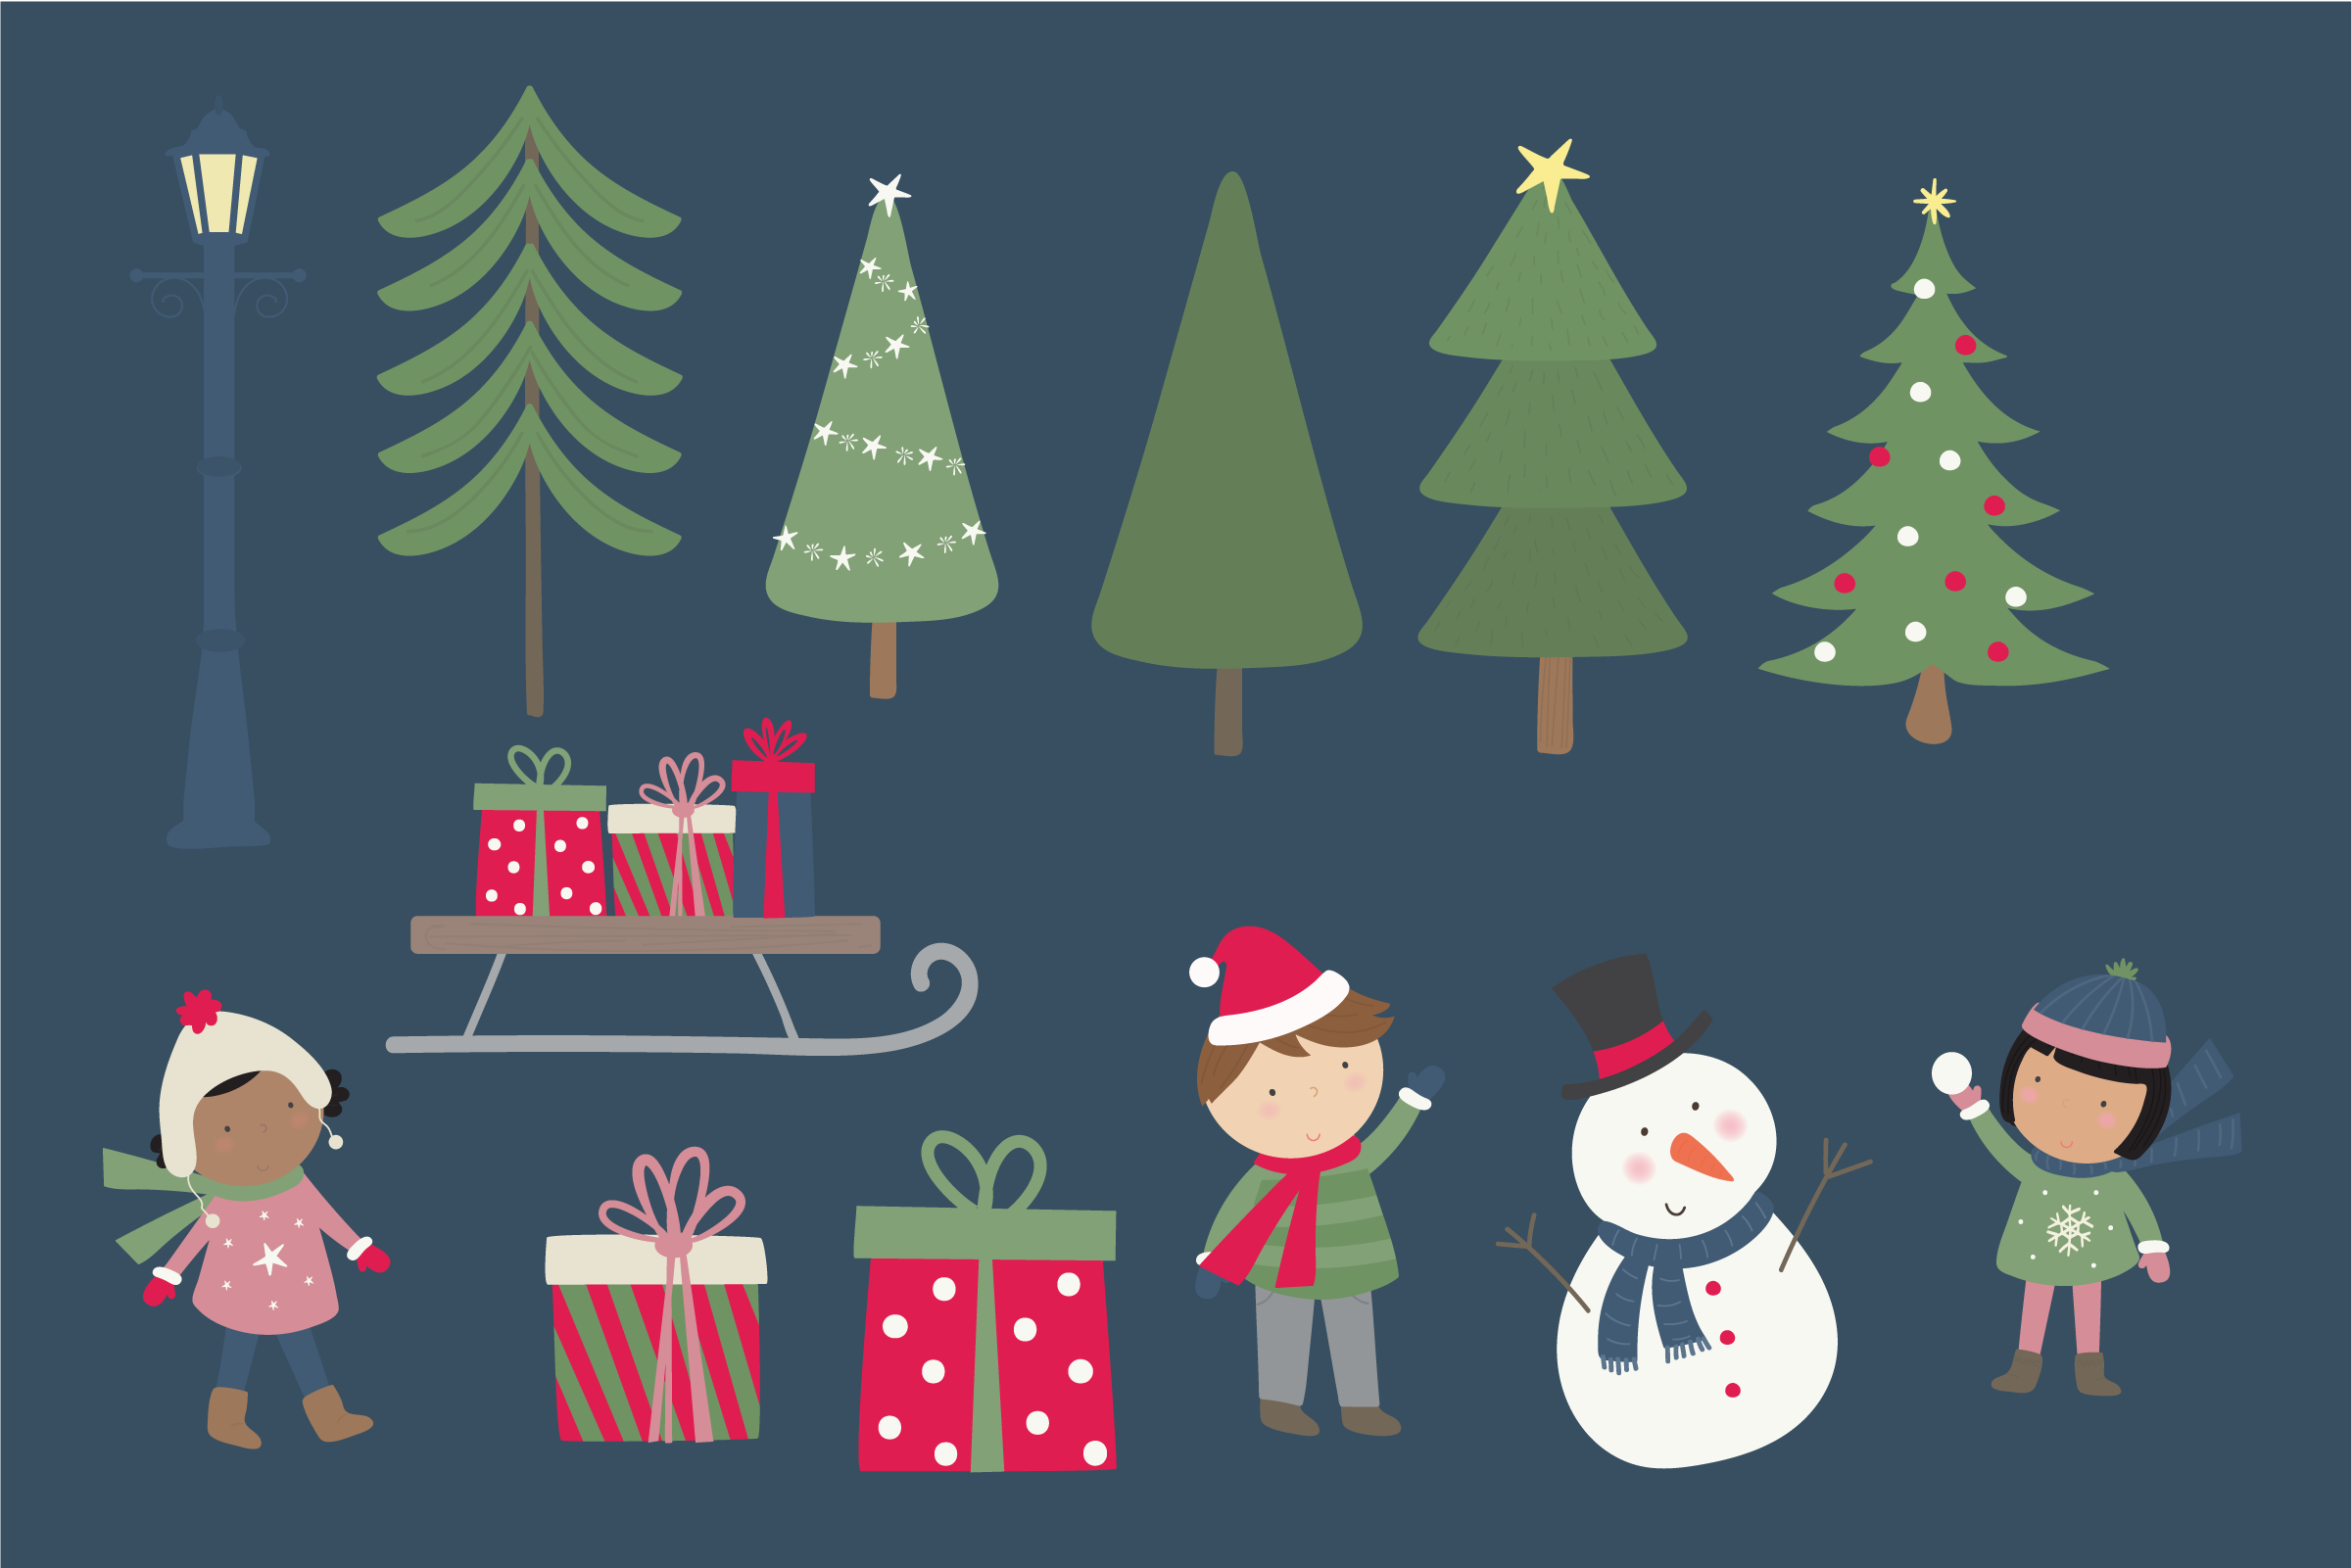 Holiday village clipart and paper example image 3